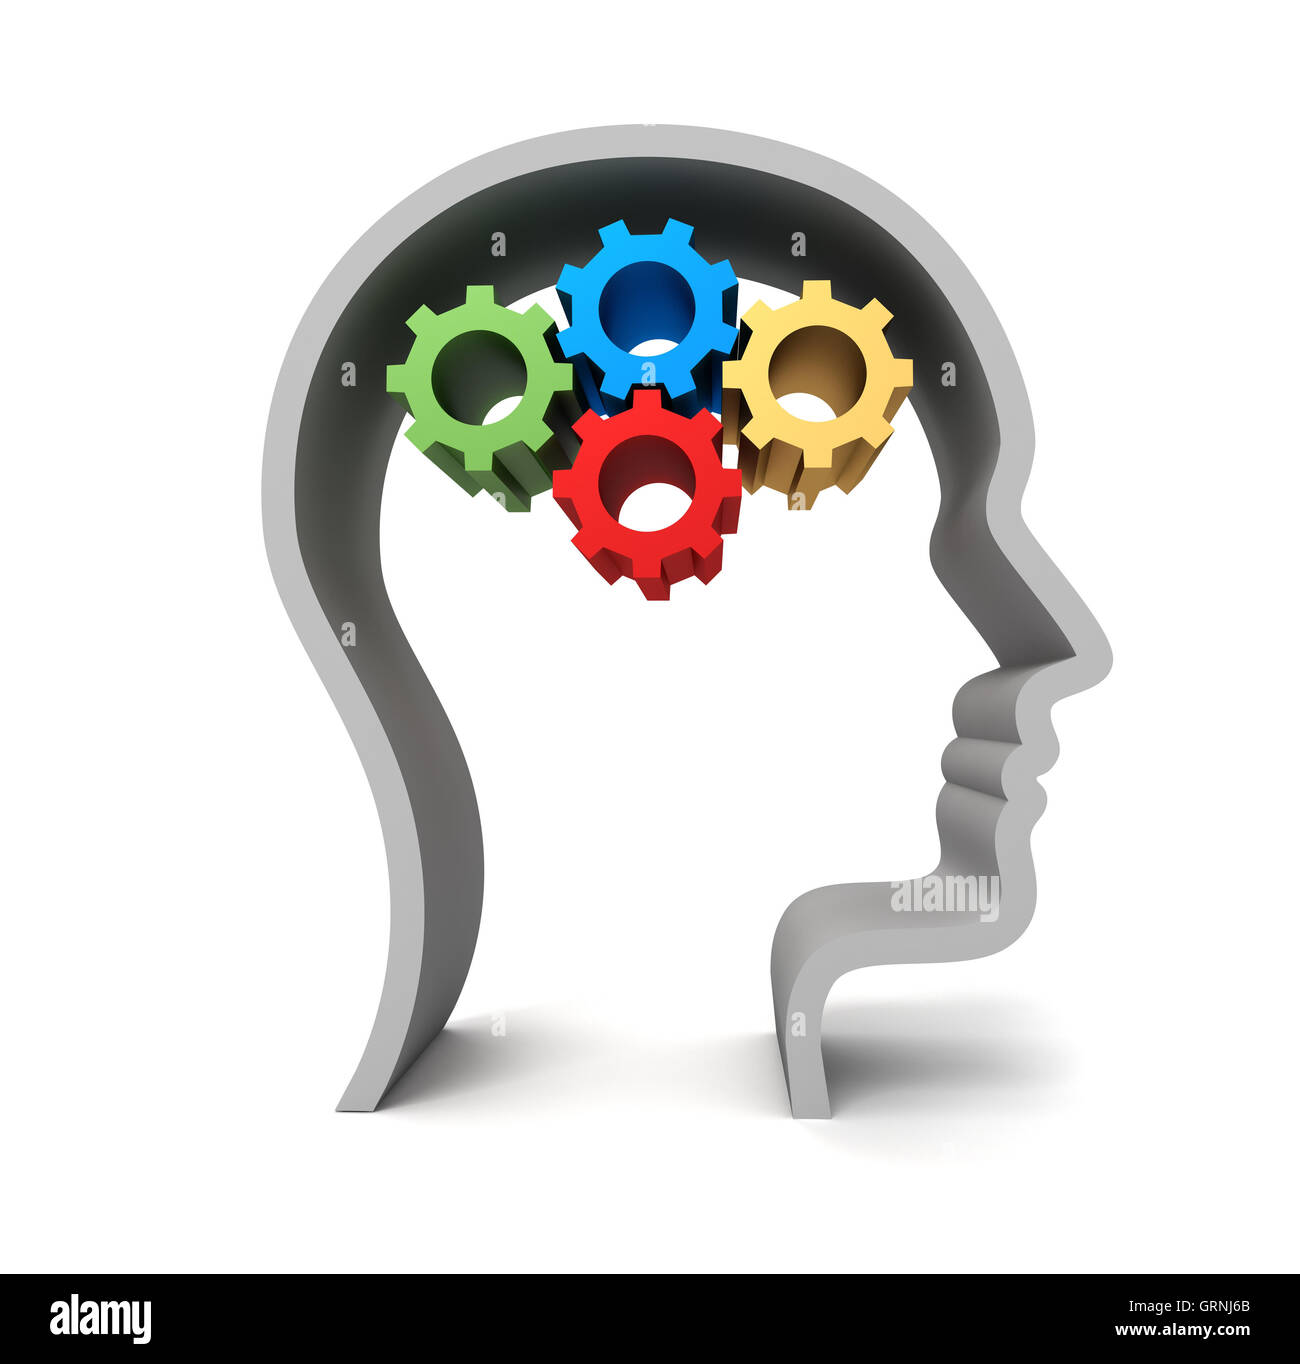 brain gears concept illustration - Stock Image